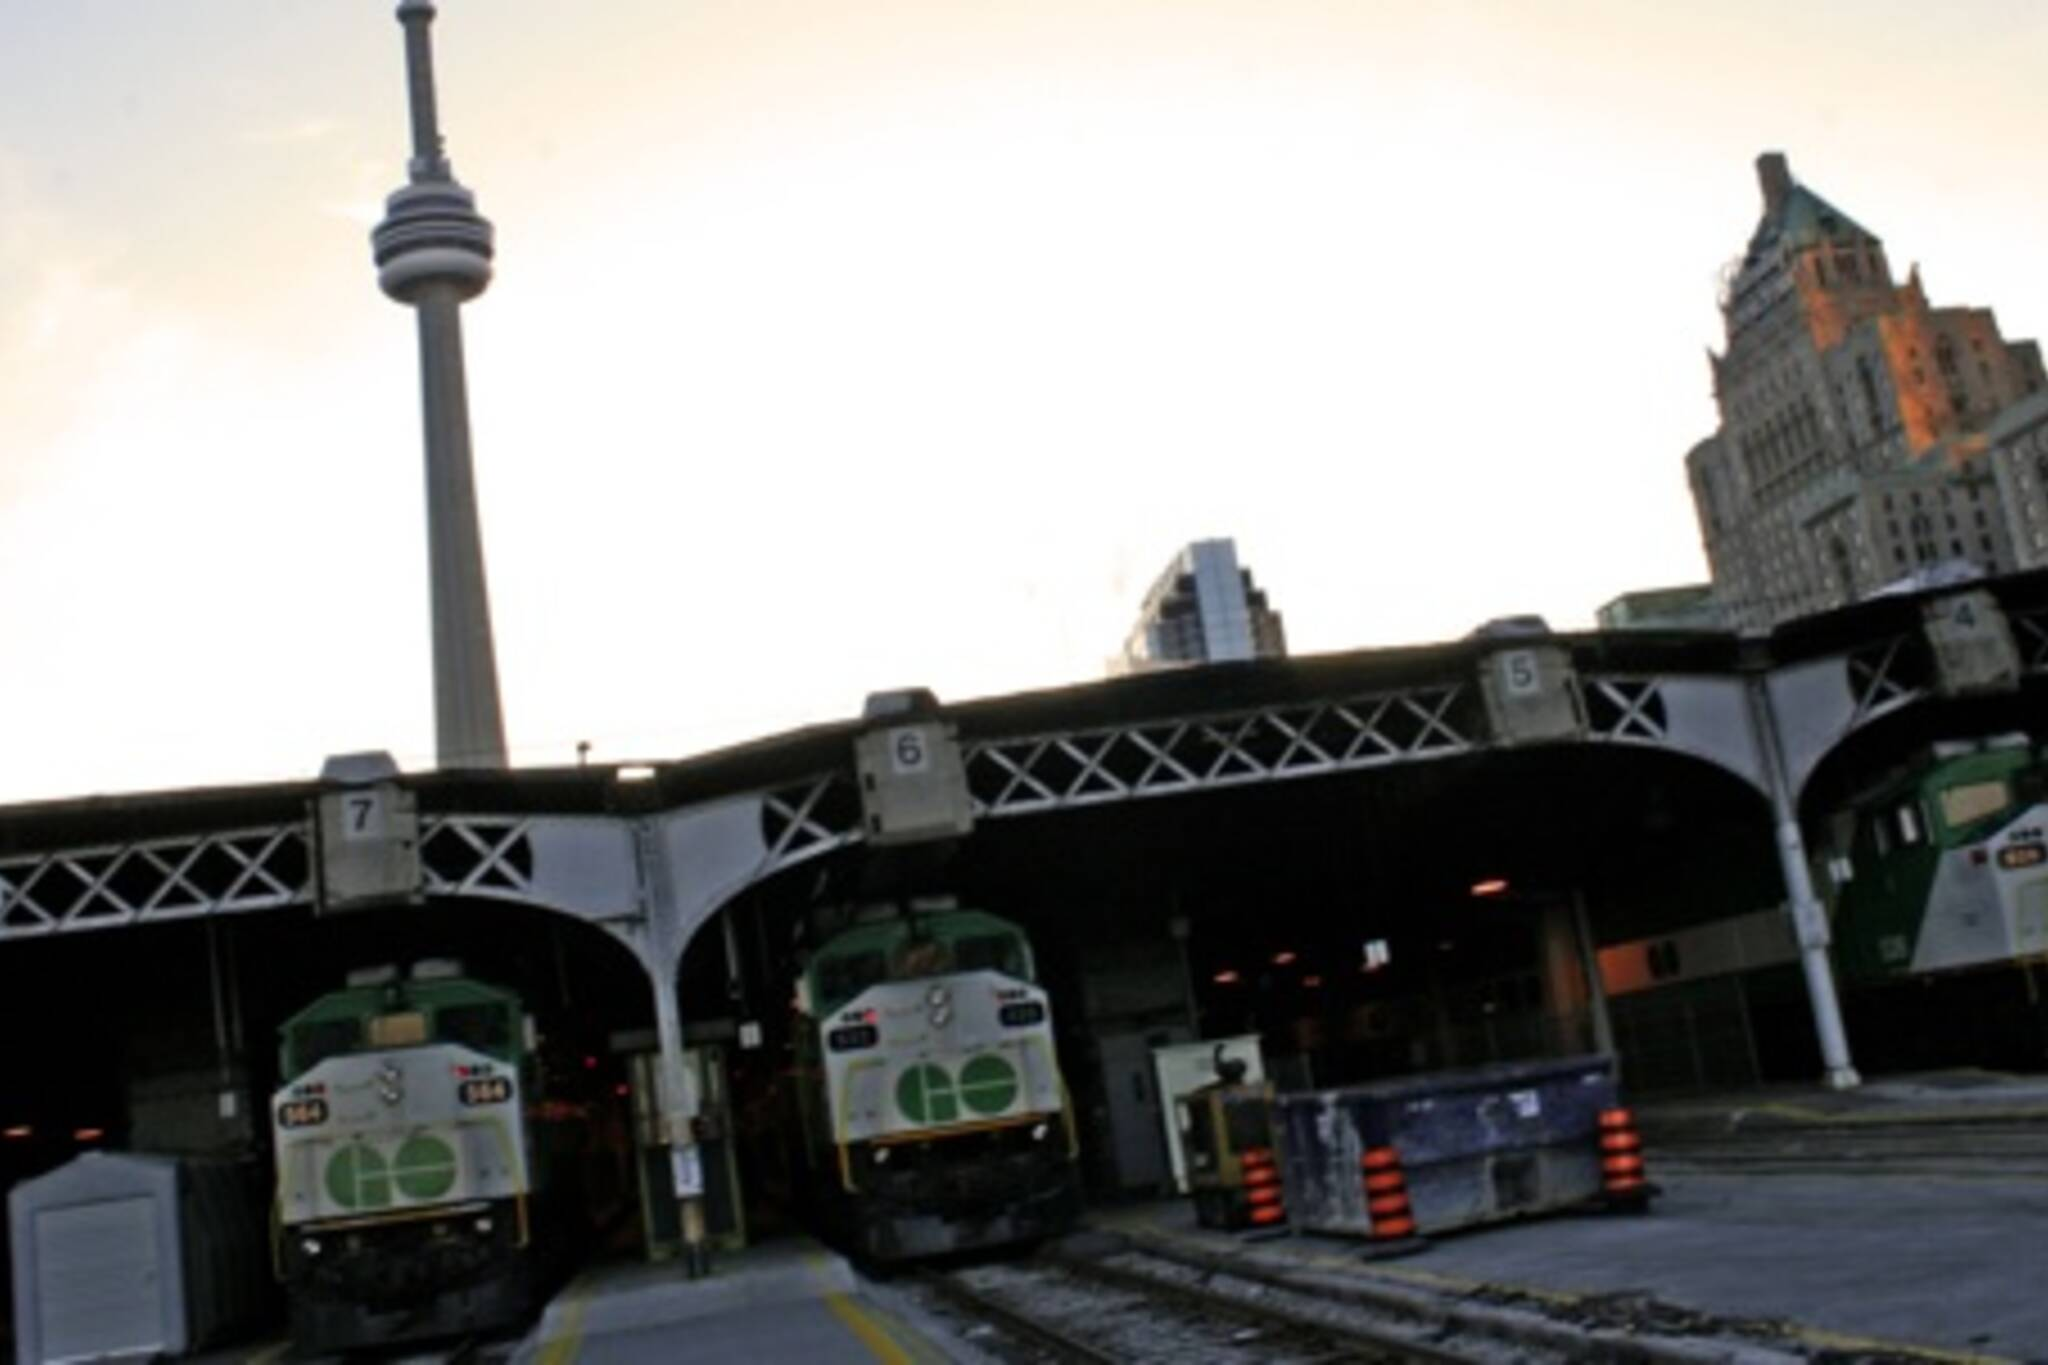 GO Train Delays Toronto